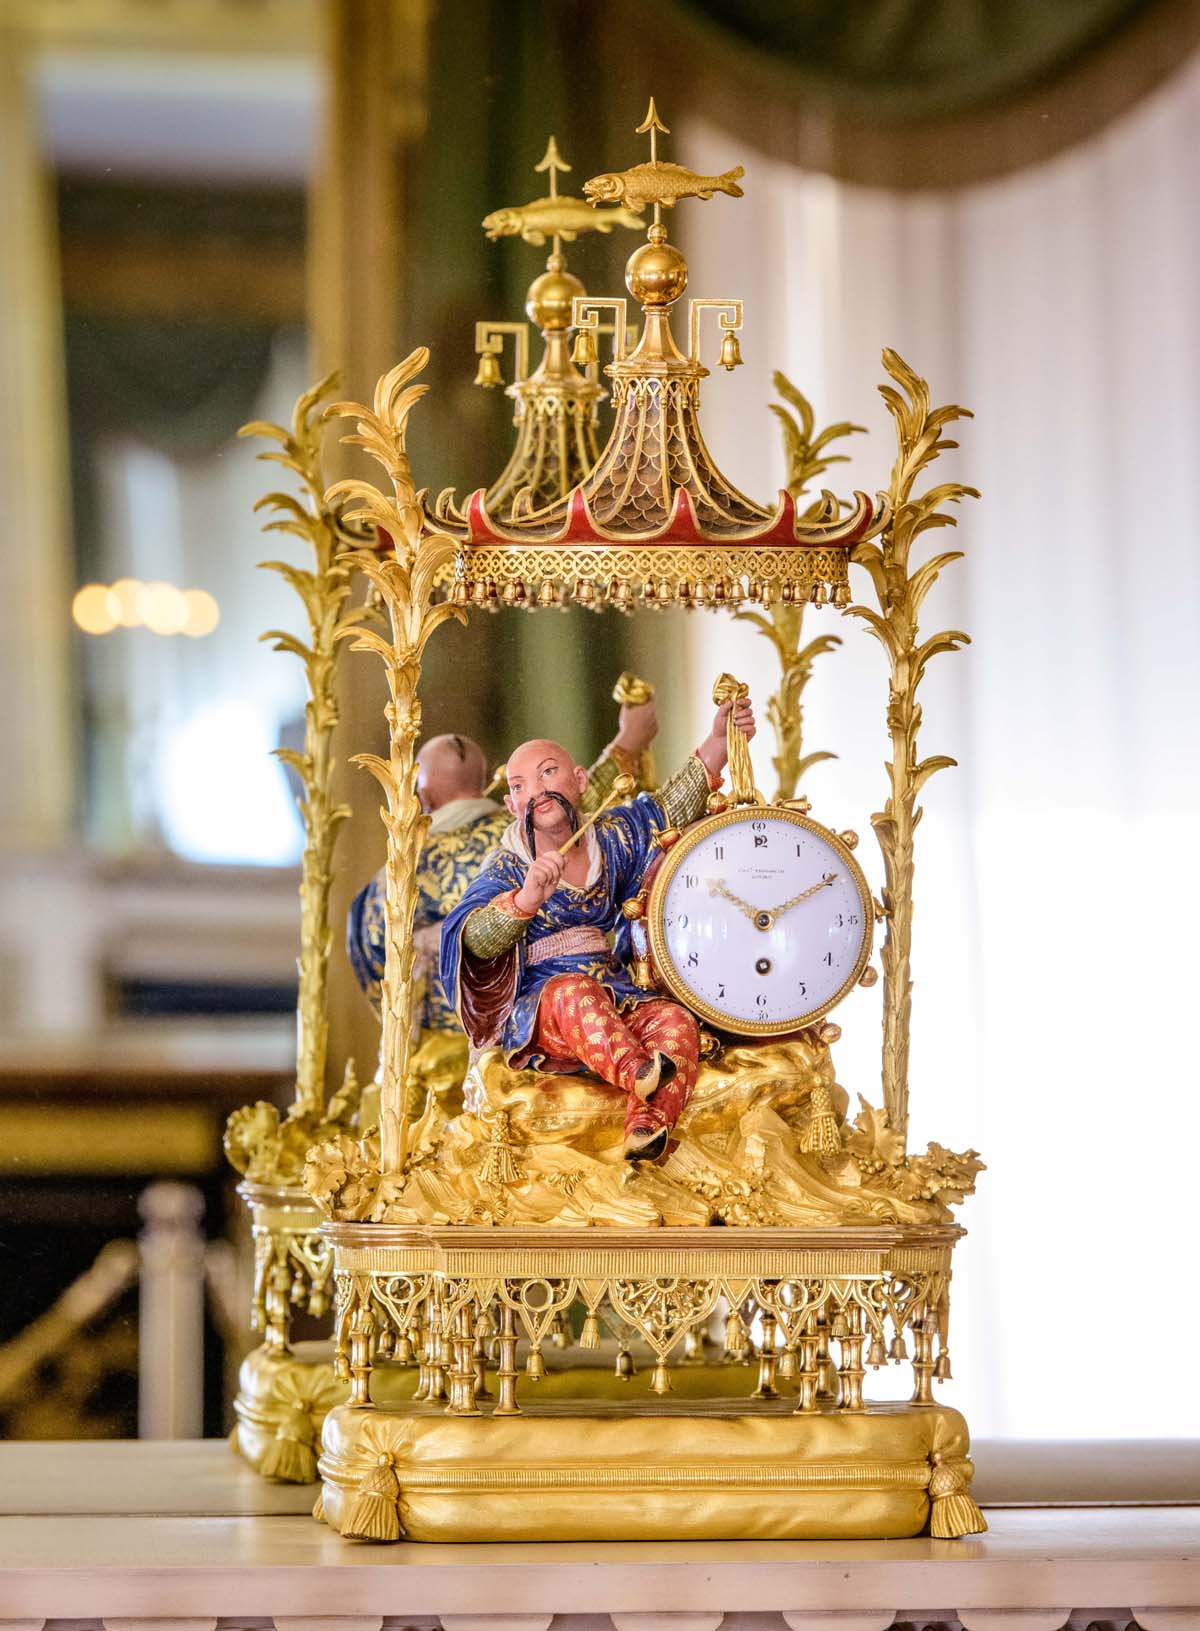 a photo of an ornate gold clock oin which a Chinese drummer figure beats the clock face